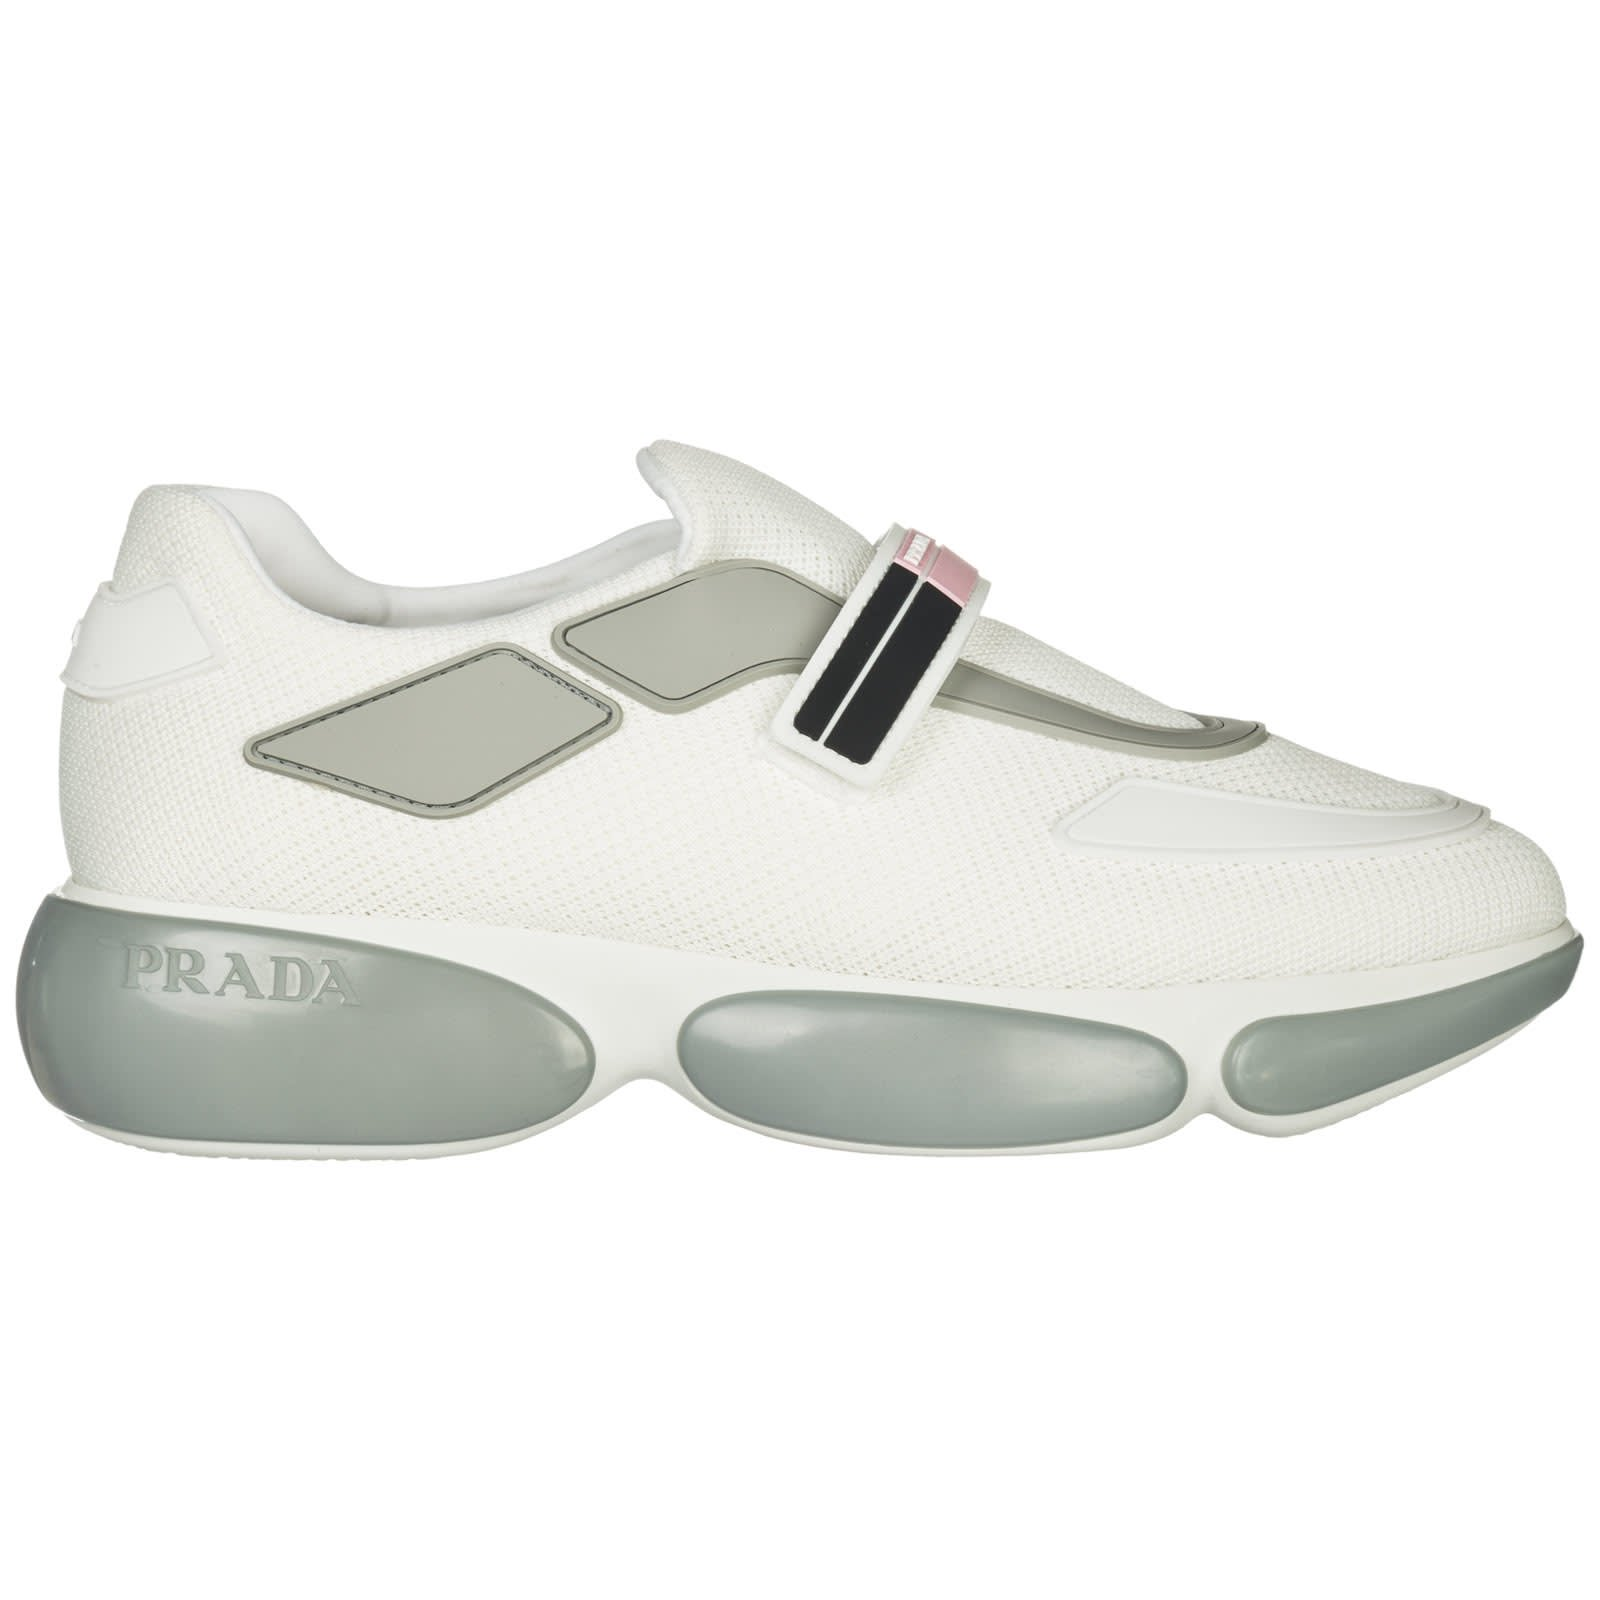 Prada Shoes Trainers Sneakers Cloudbust